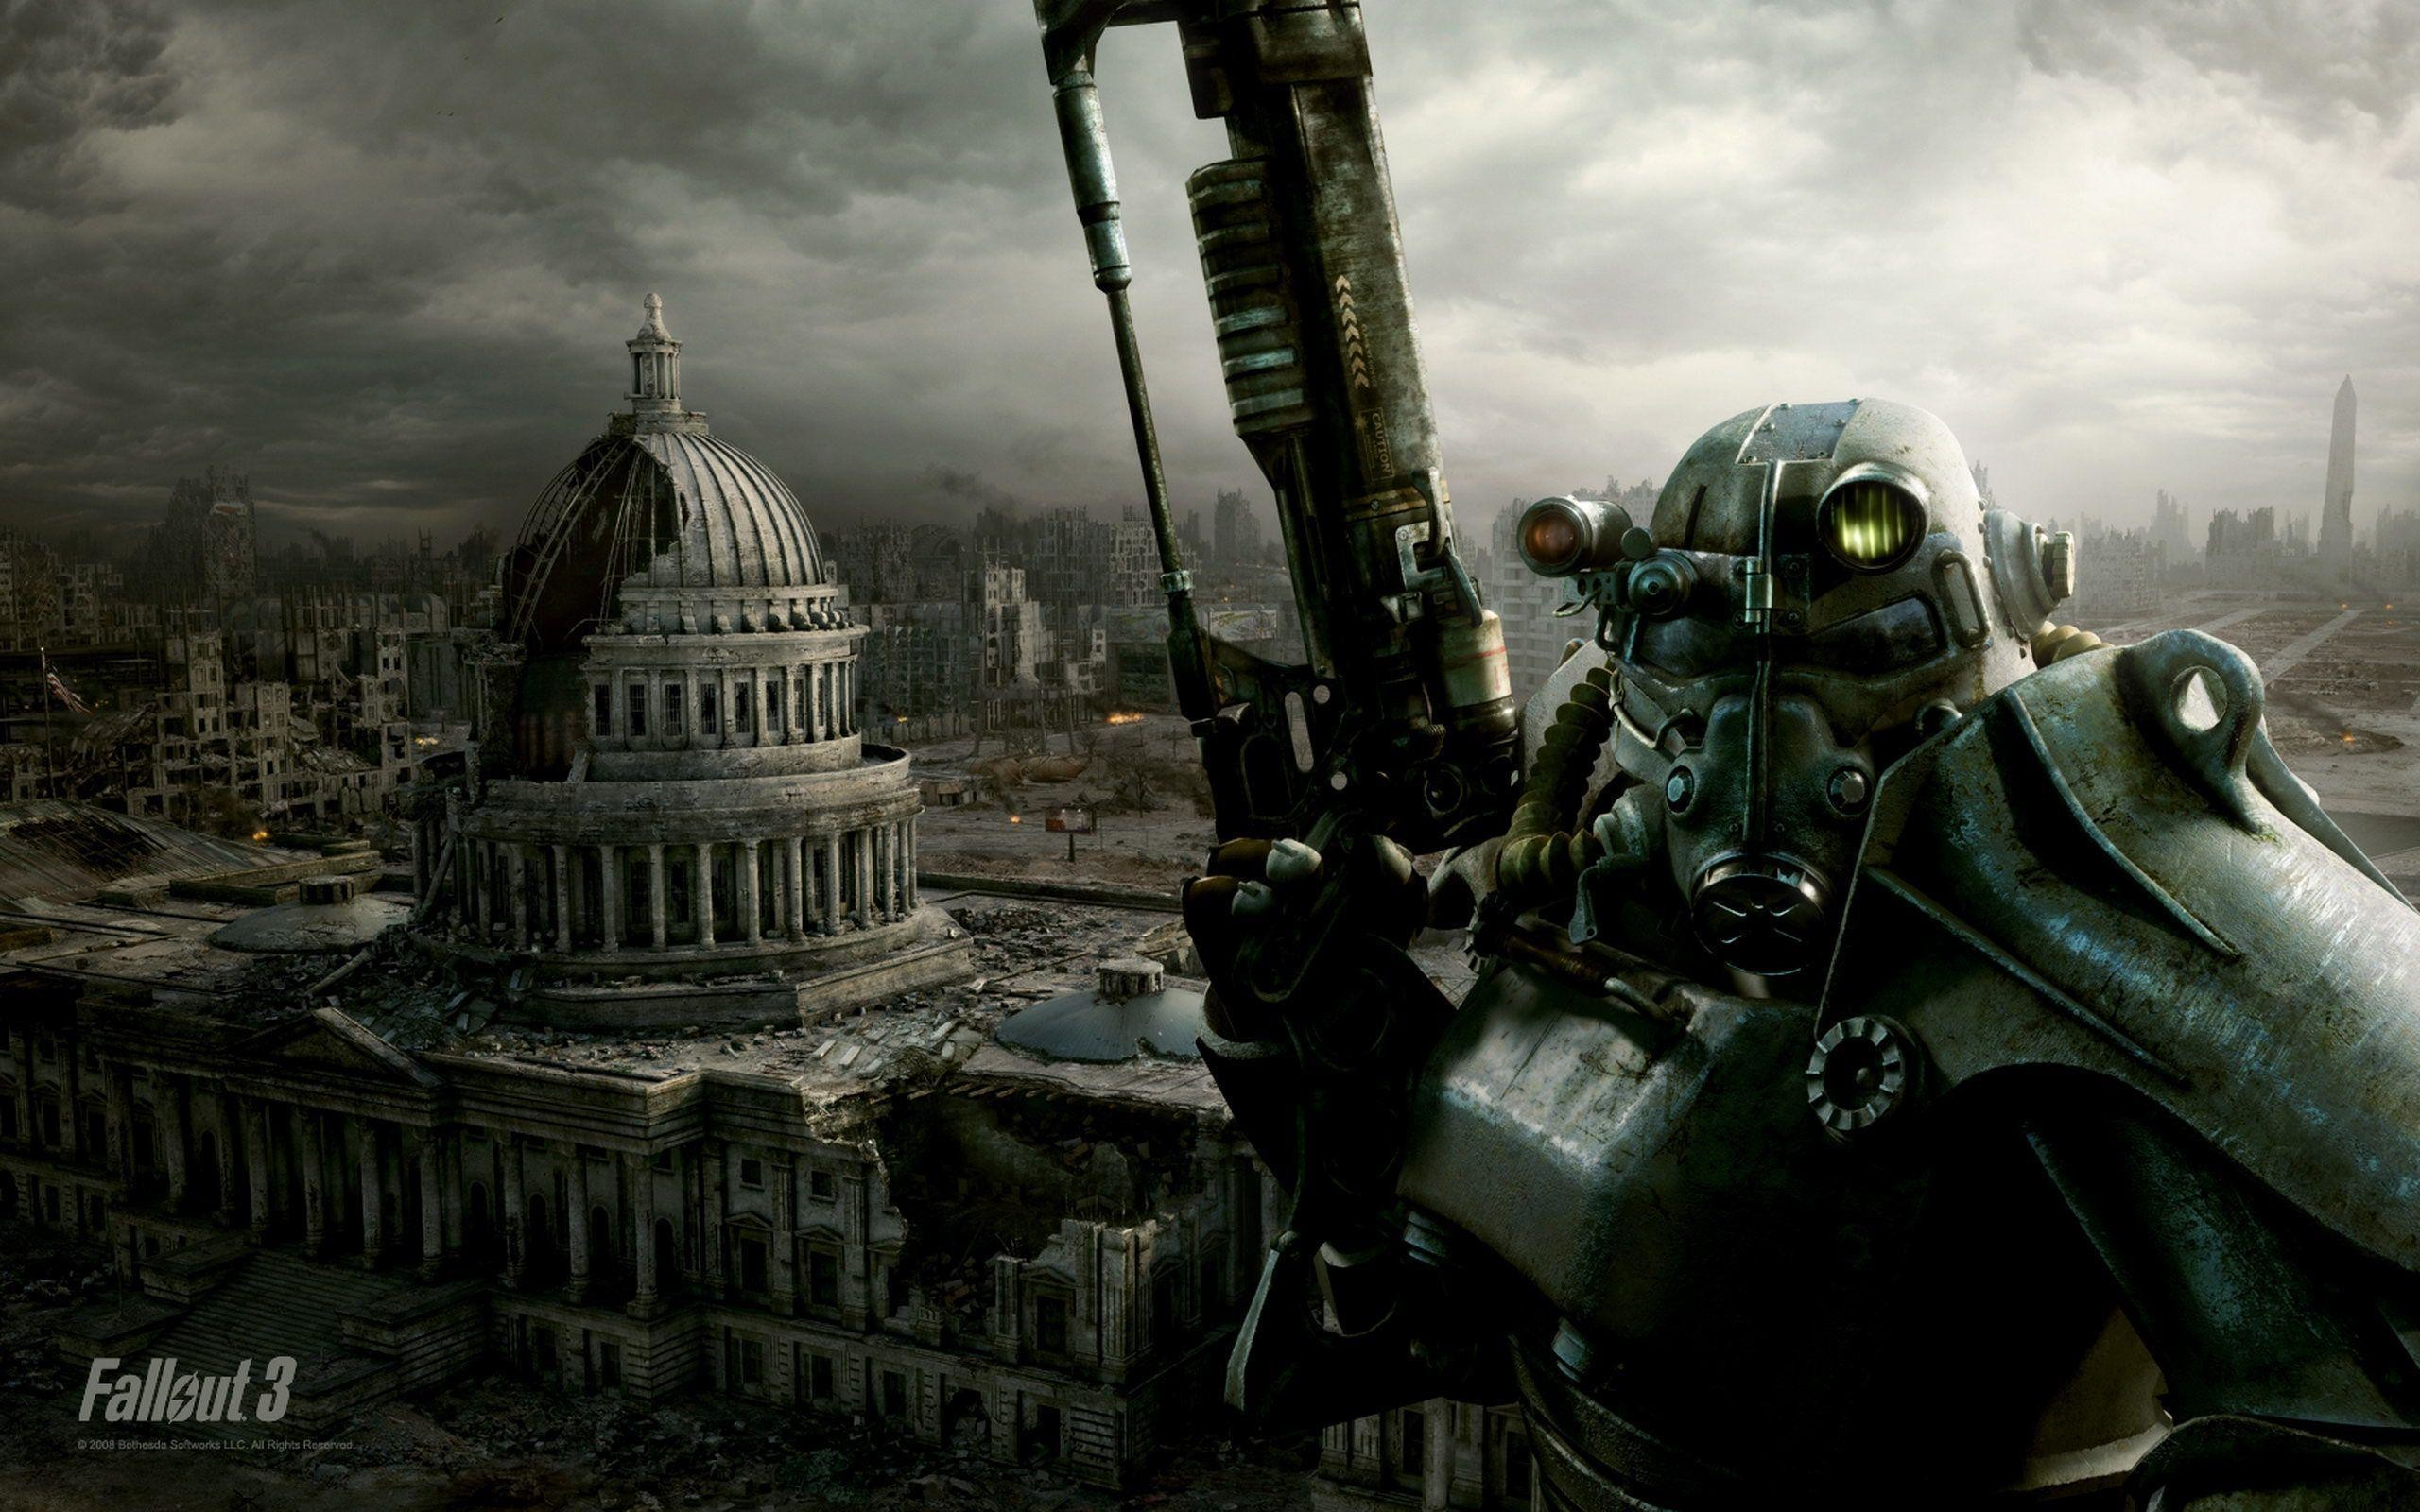 fallout3 wallpapers full hd search